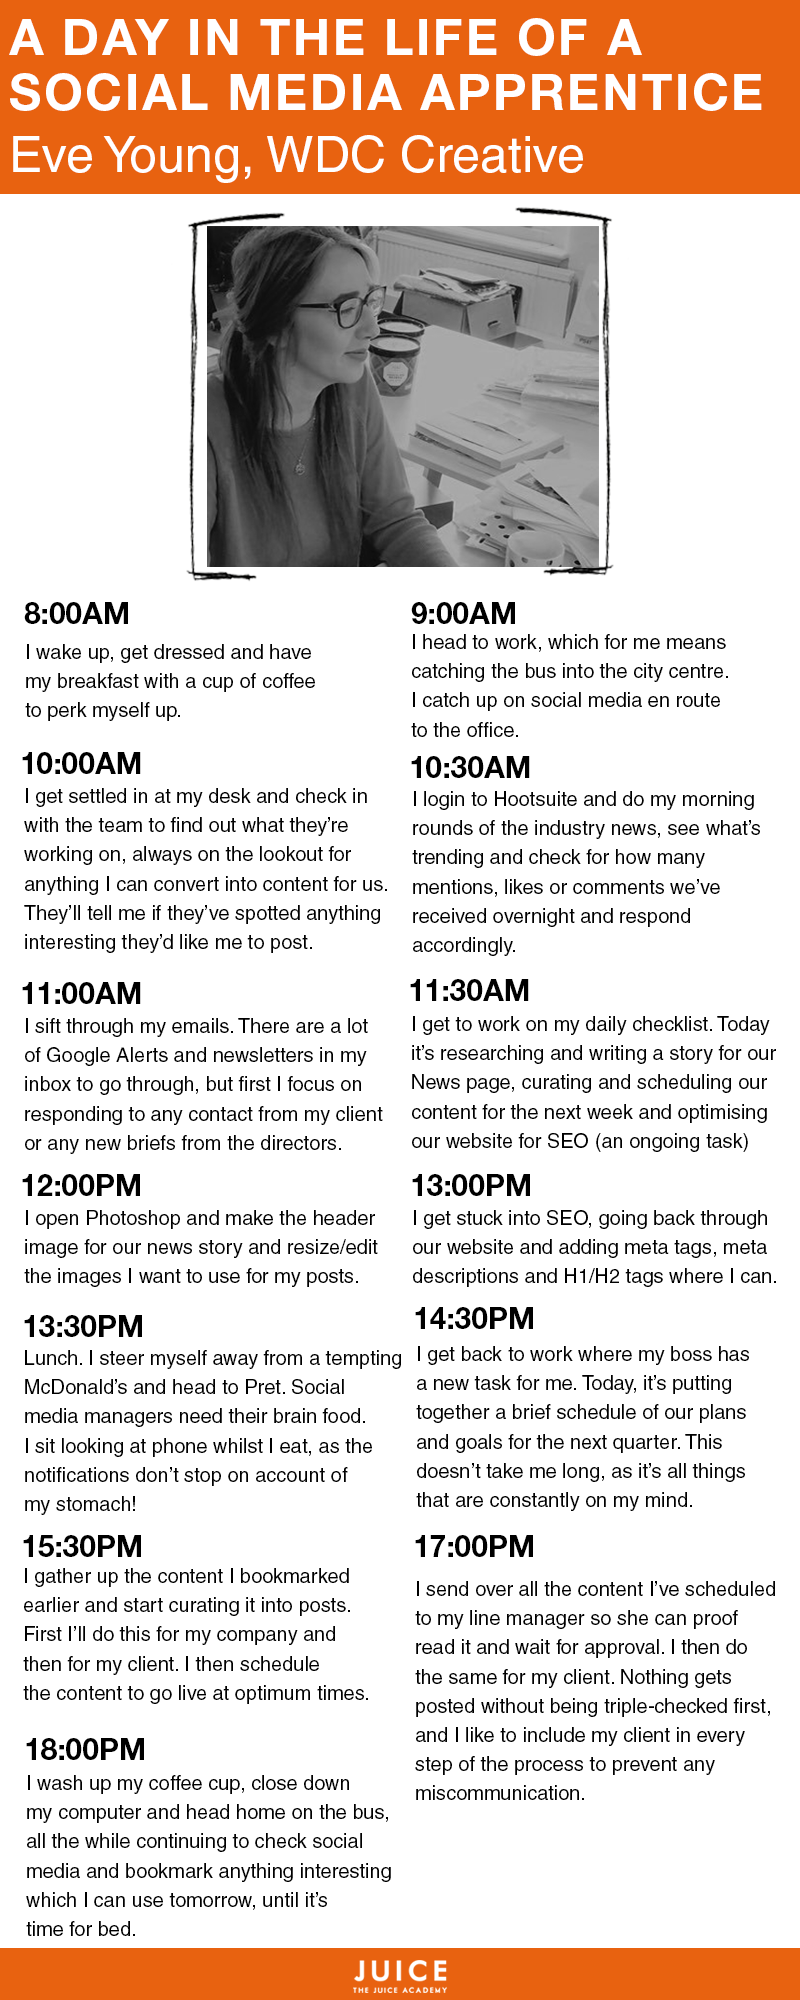 A Day In The Life of A Social Media Apprentice   Infographic